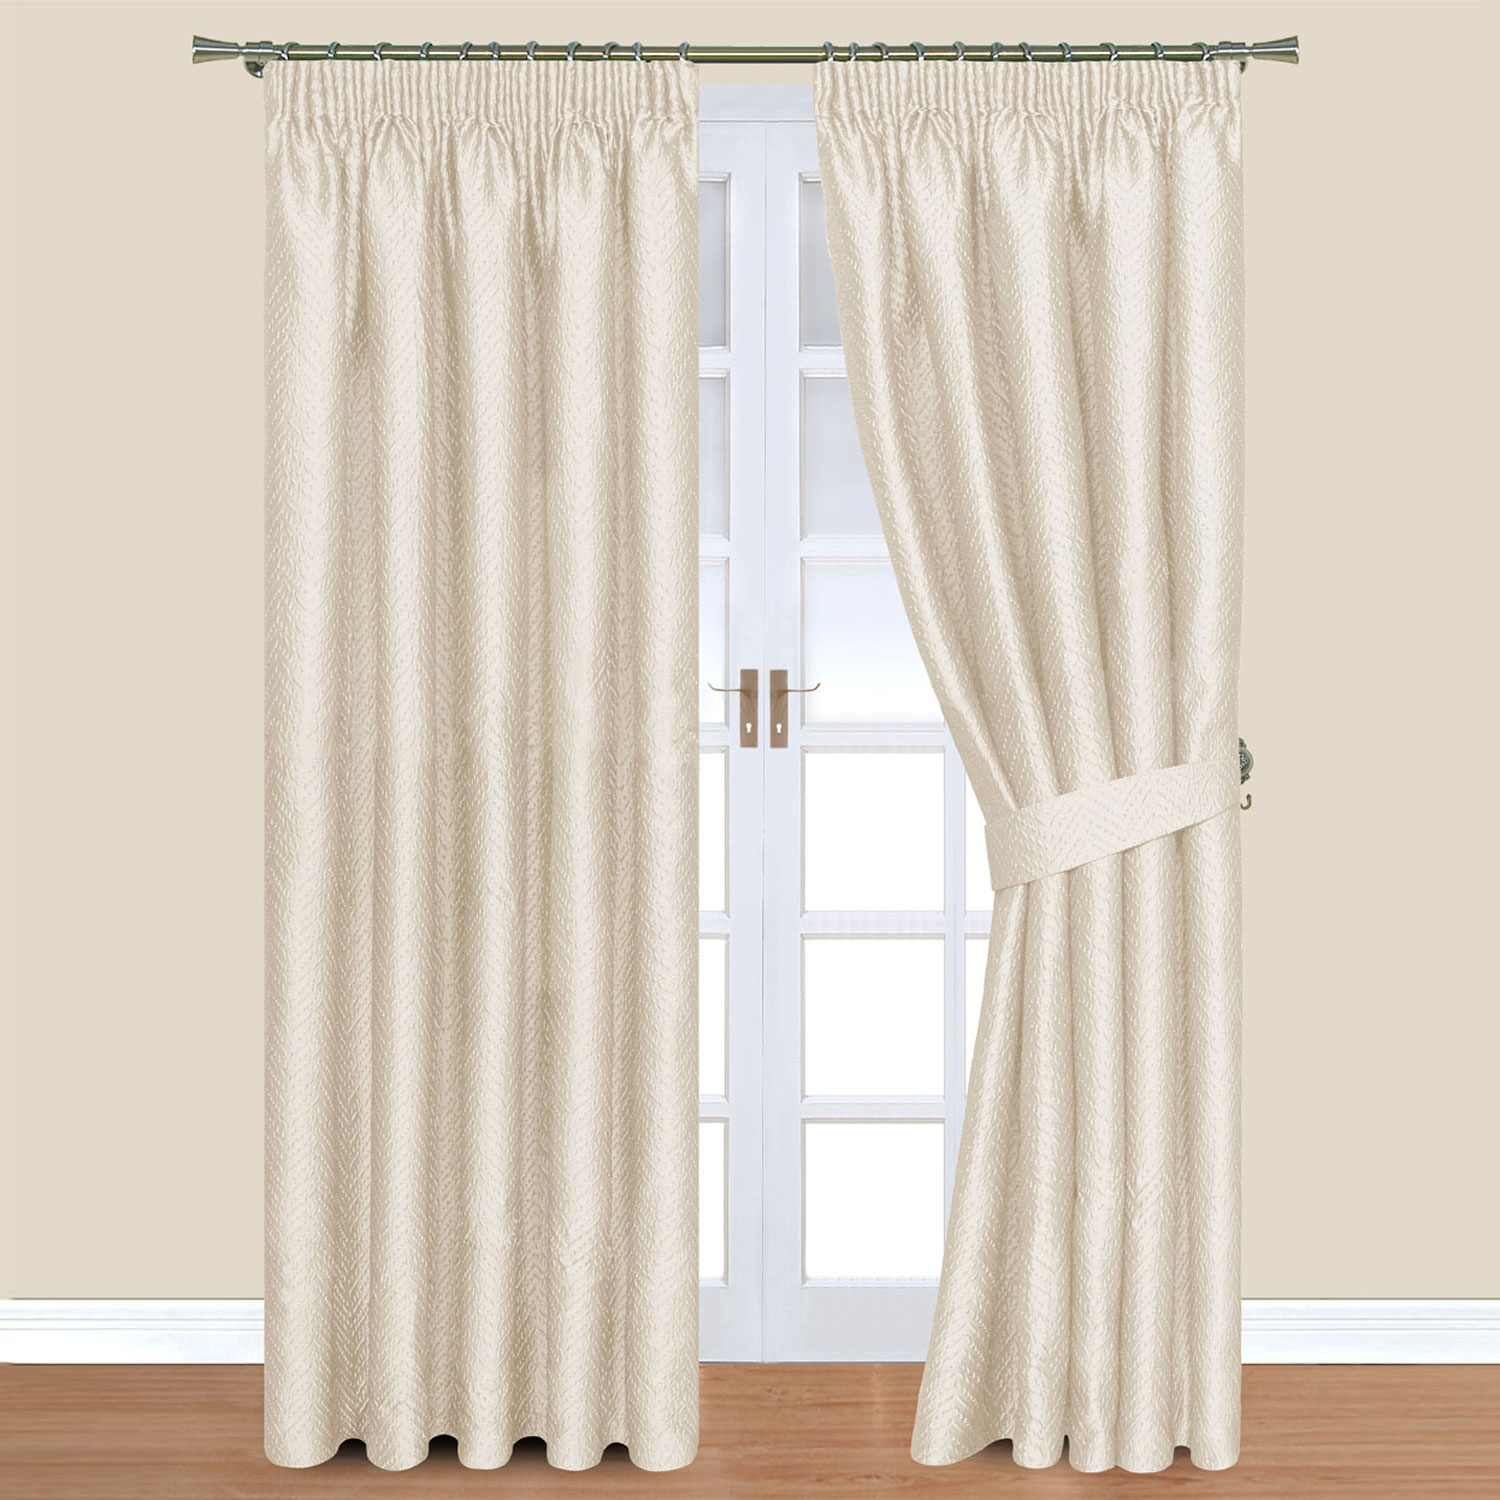 Florence Cream Curtains From Curtains 2go Pinterest Regarding Lined Cream Curtains (View 3 of 15)